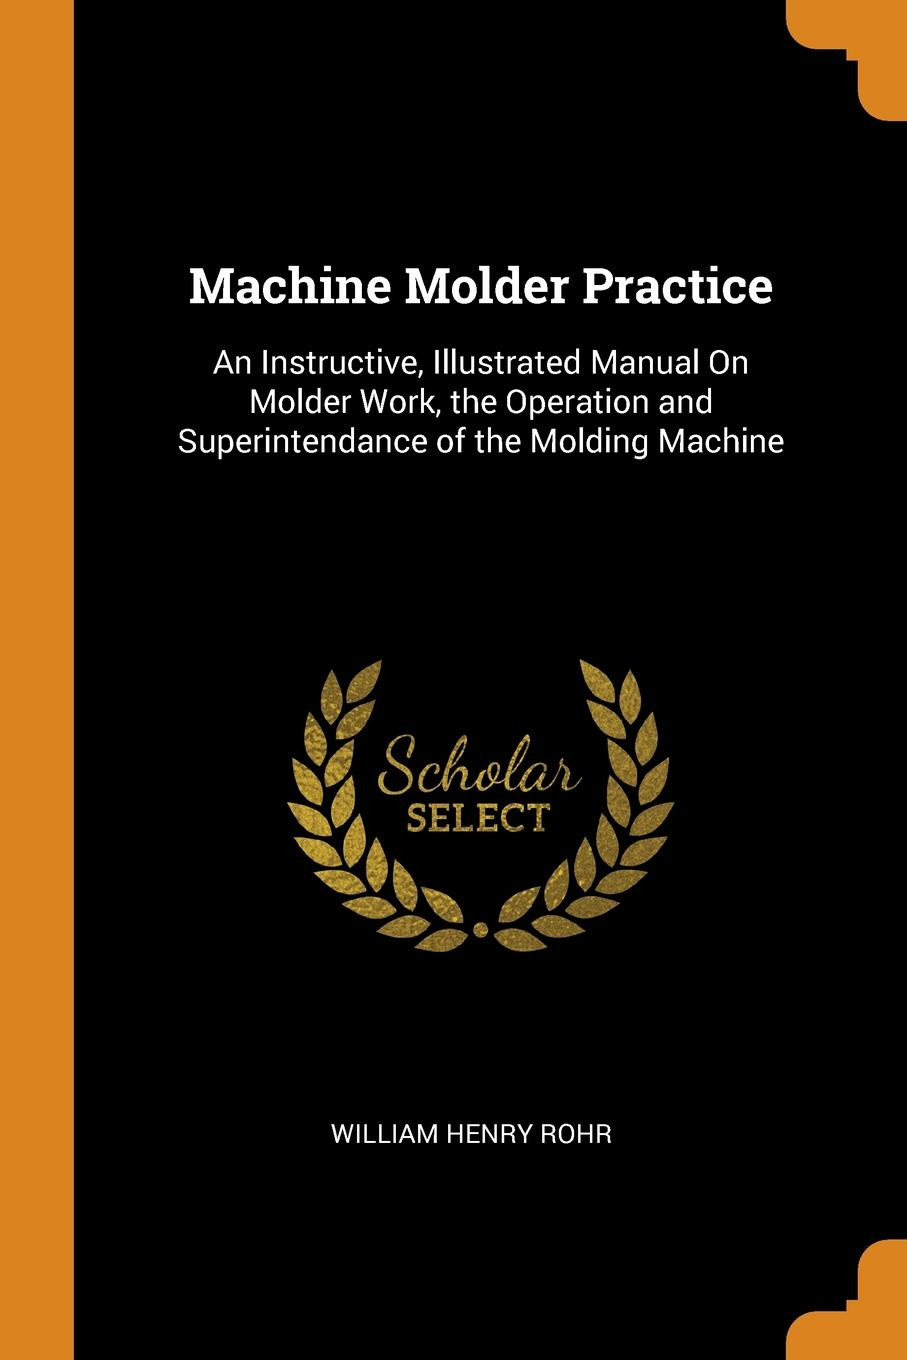 William Henry Rohr. Machine Molder Practice. An Instructive, Illustrated Manual On Molder Work, the Operation and Superintendance of the Molding Machine